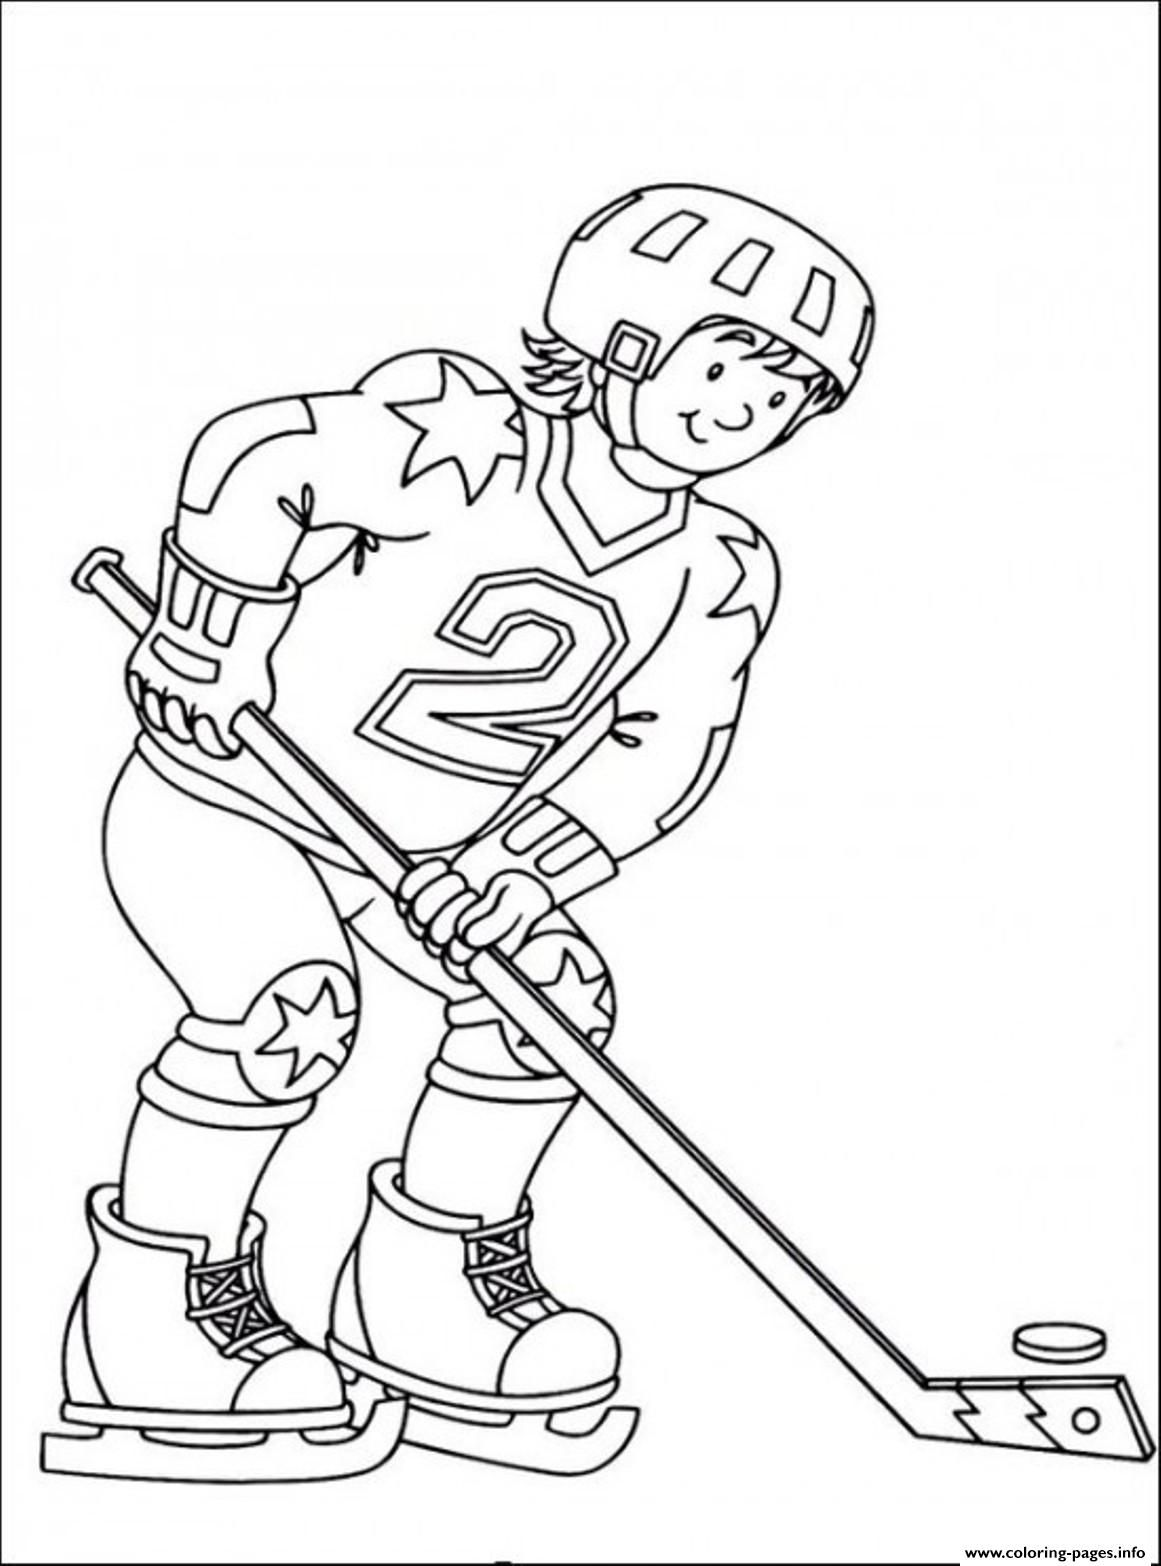 Print hockey sedbd coloring pages | Разукрашки | Pinterest